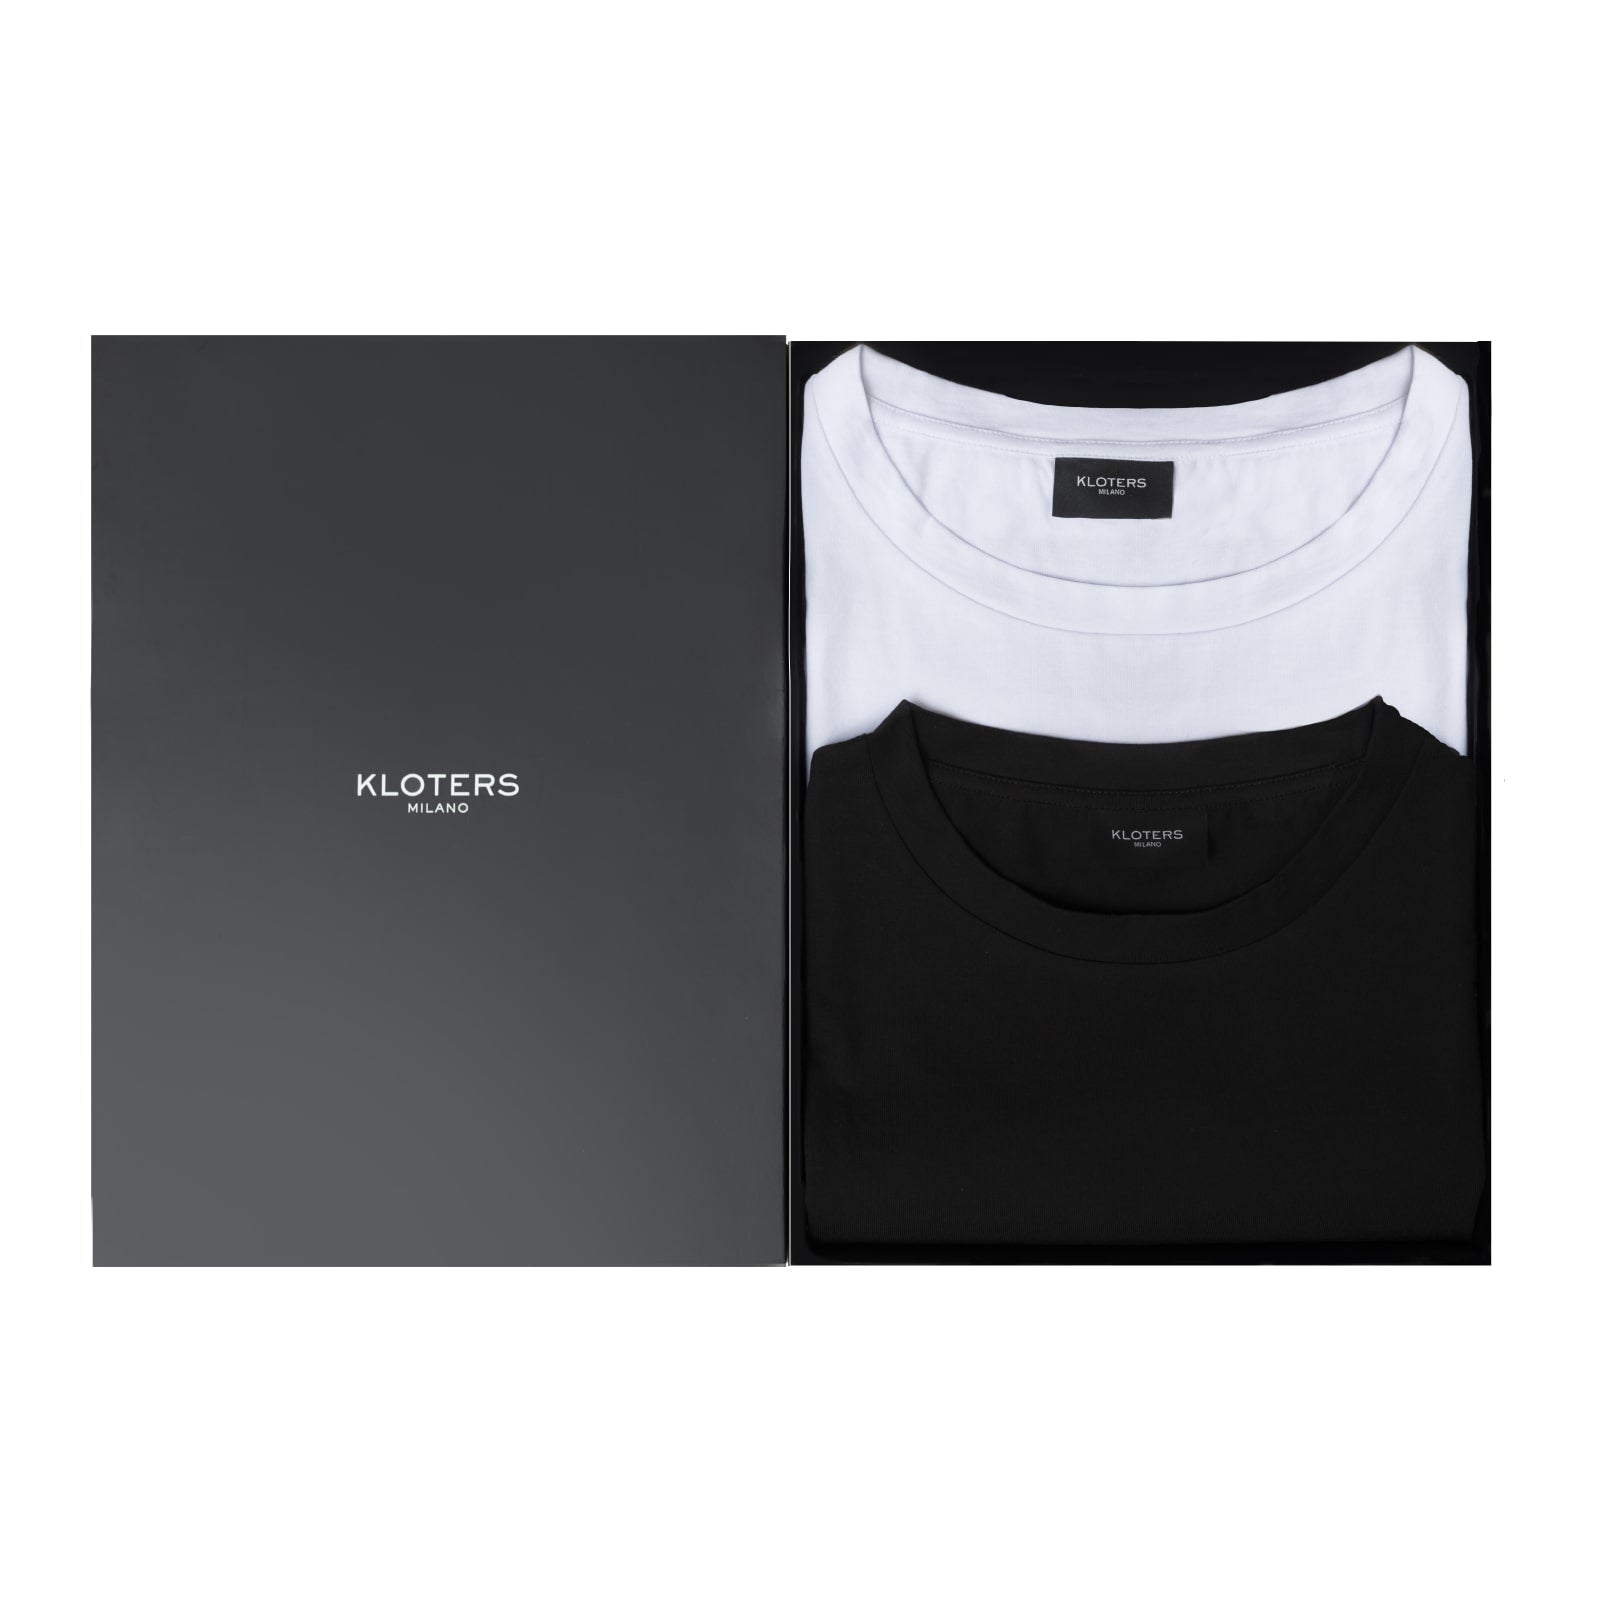 T-shirt Pack: Black & White - kloters